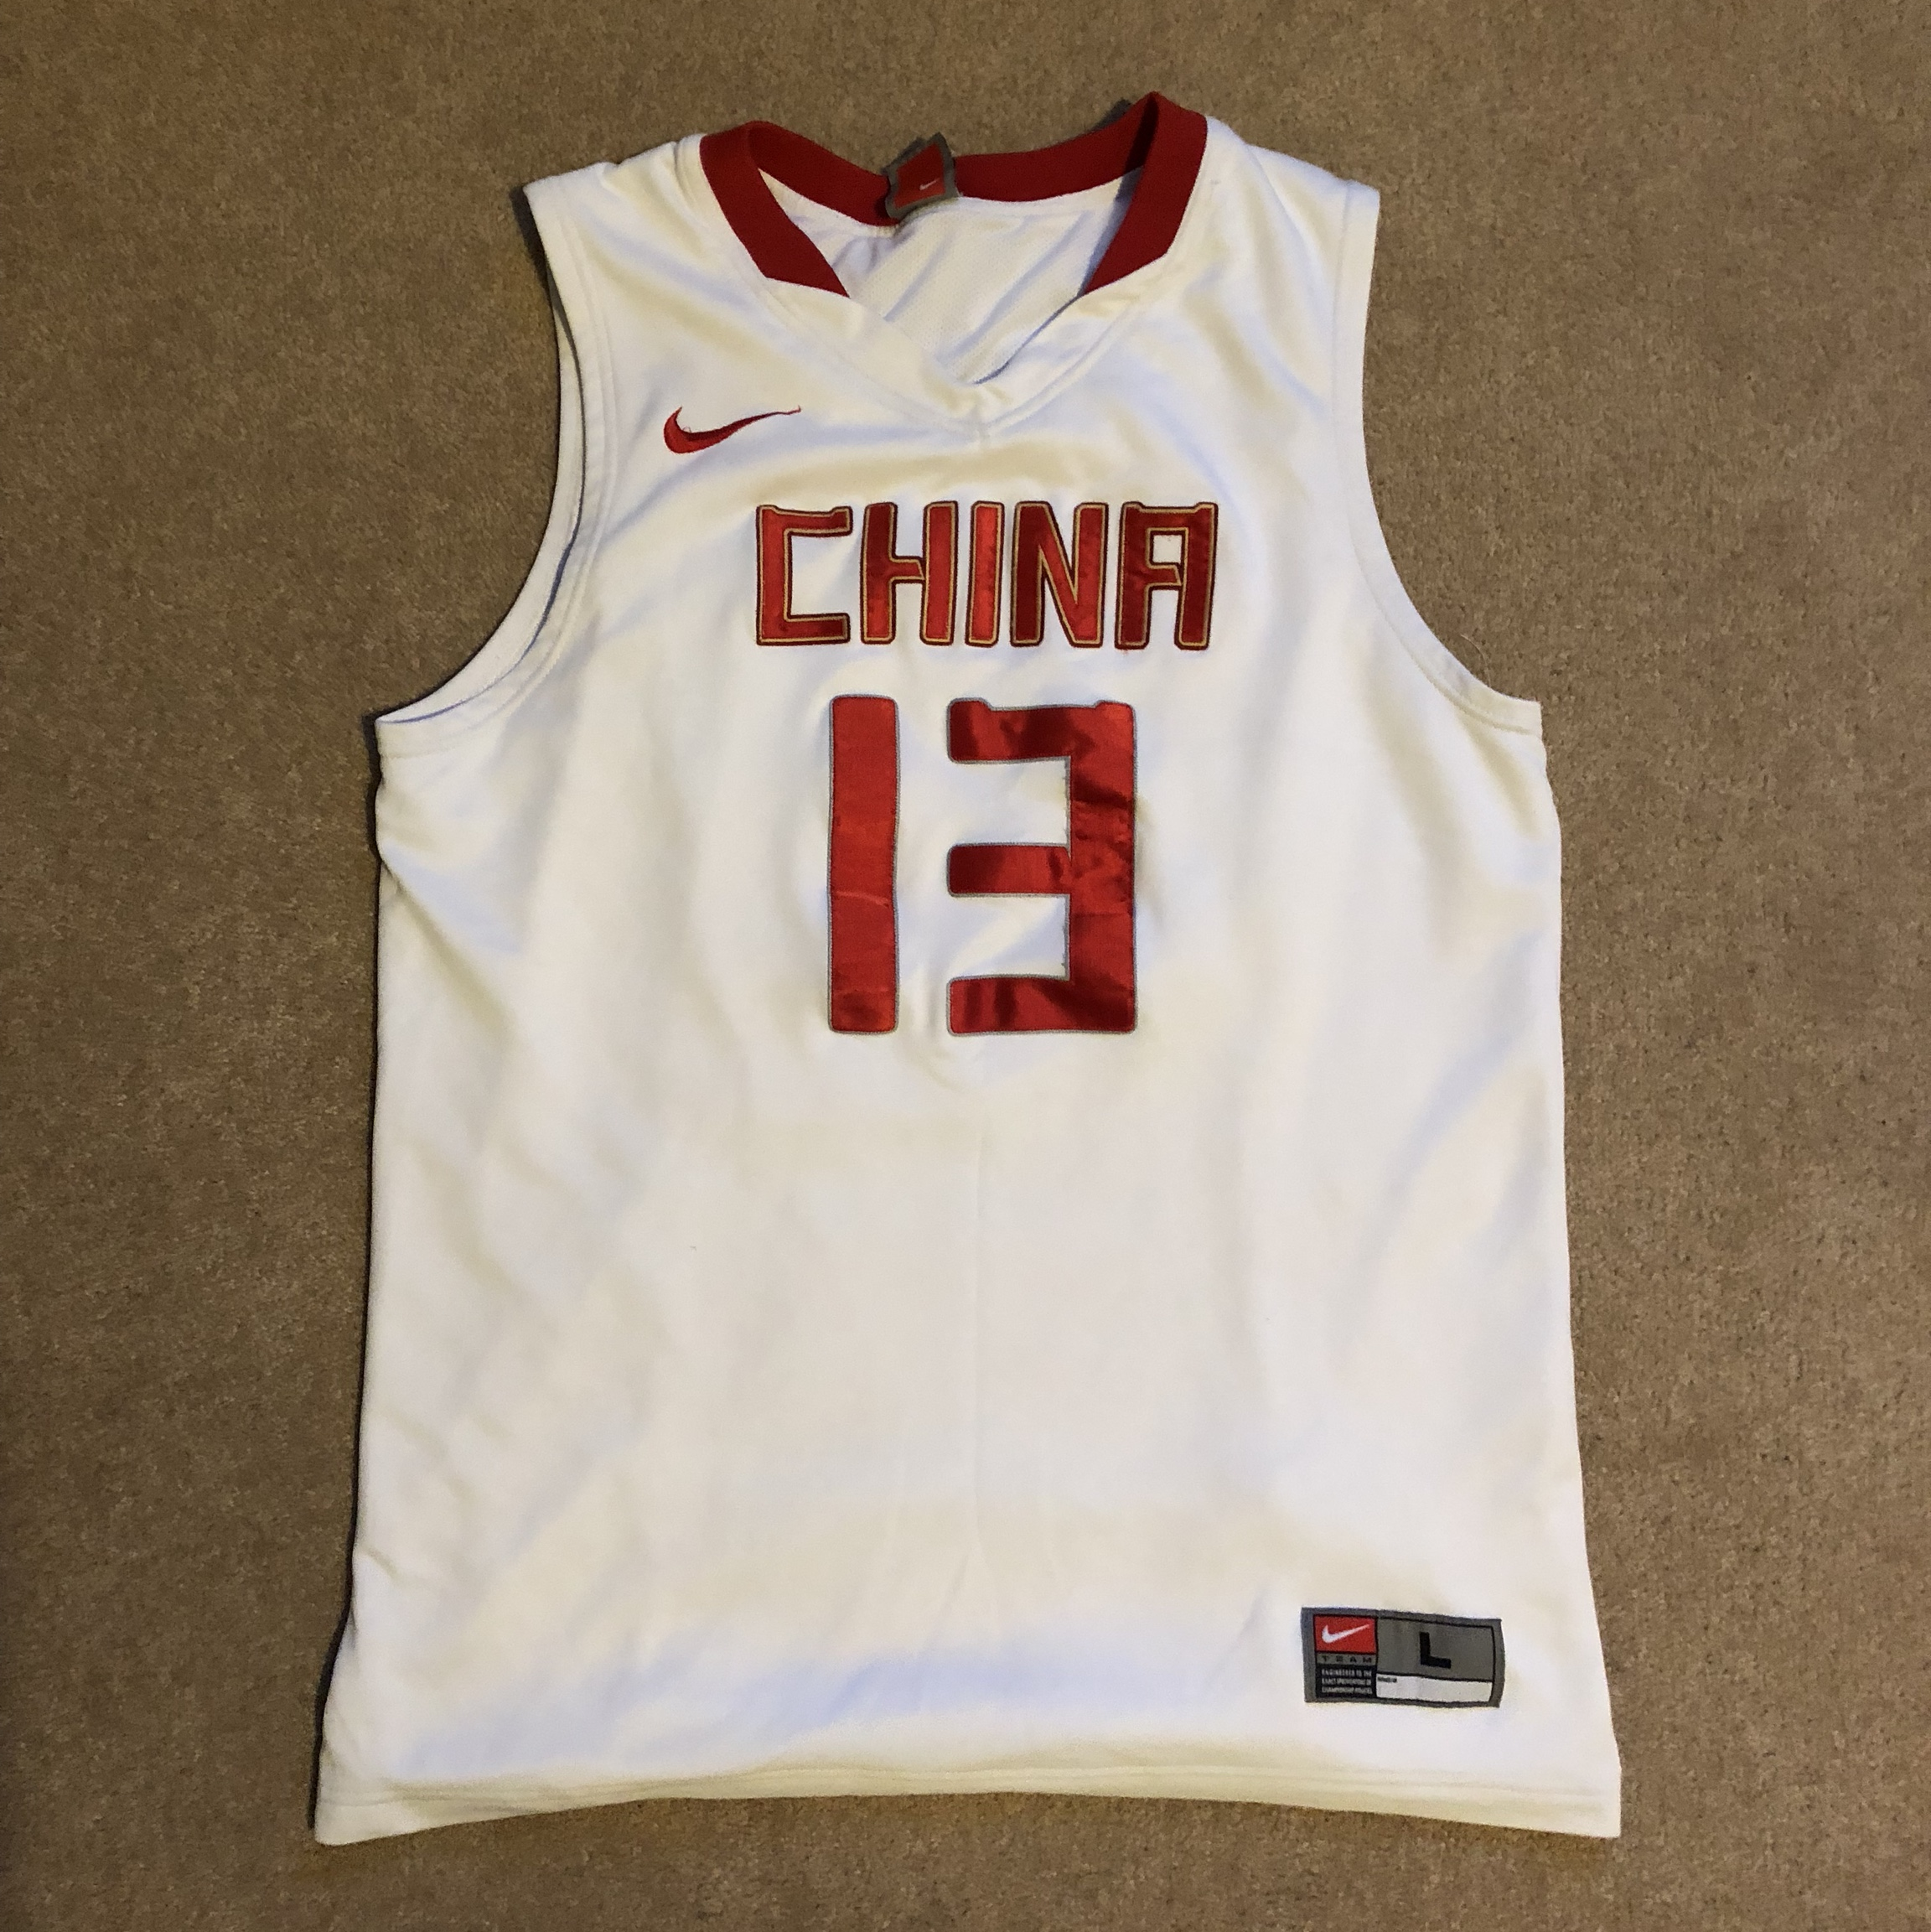 separation shoes a4dc9 7c4e1 Nike China Olympics Yao Ming Basketball Jersey, size ...